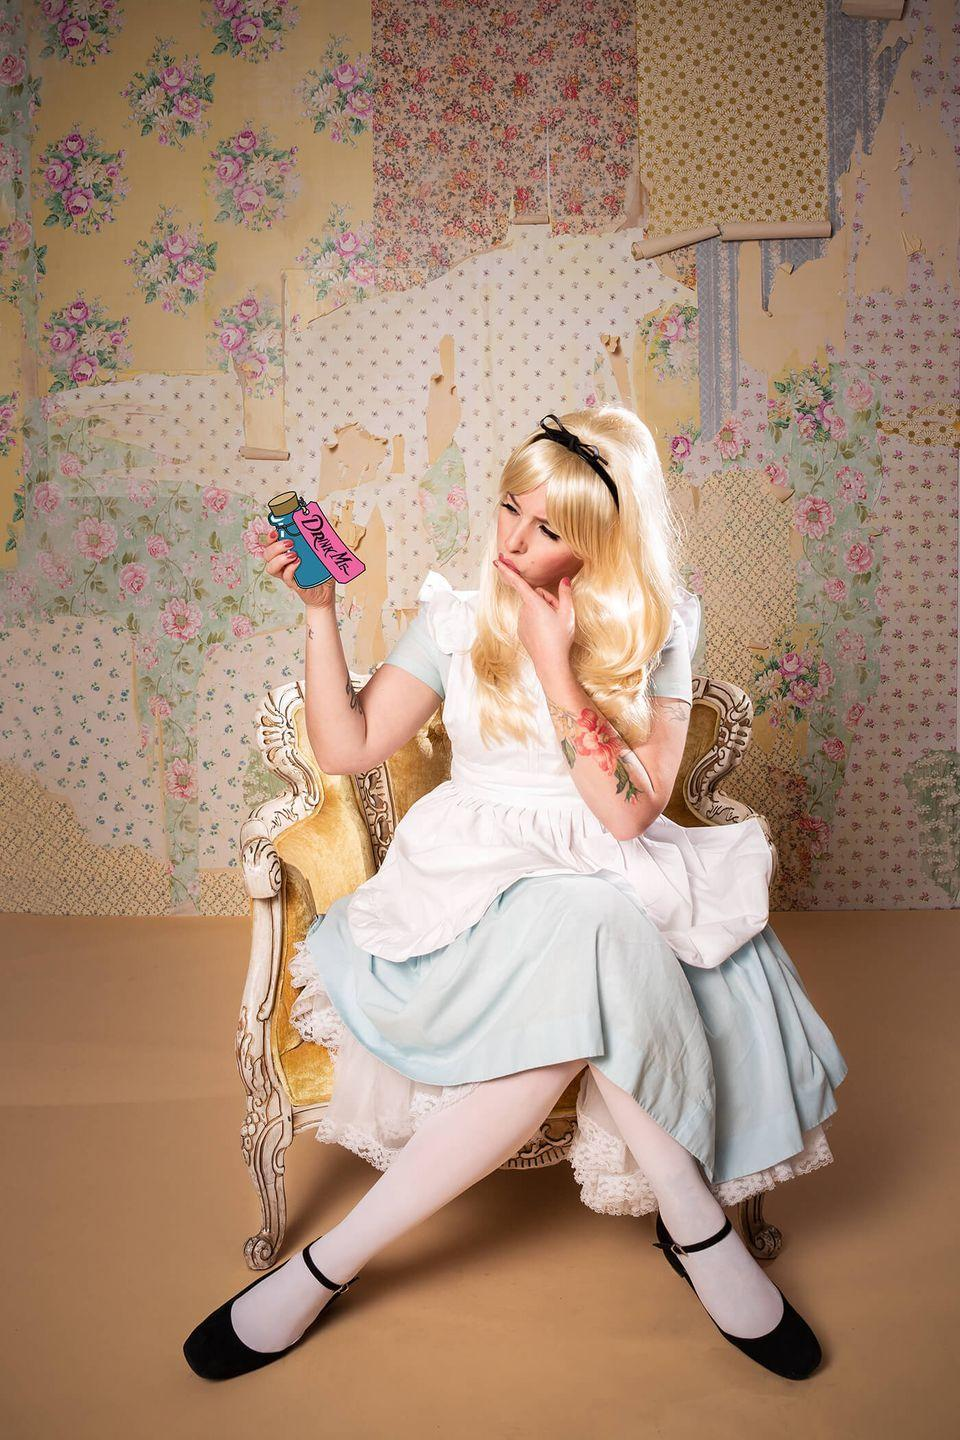 """<p>It isn't really so curiouser and curiouser how easy this costume is to DIY—start with a blue dress and add a few elements like a blonde wig and white apron and you've almost got it!</p><p><strong>Get the tutorial at <a href=""""http://keikolynn.com/2018/10/disney-alice-in-wonderland-costume/"""" rel=""""nofollow noopener"""" target=""""_blank"""" data-ylk=""""slk:Keiko Lynn"""" class=""""link rapid-noclick-resp"""">Keiko Lynn</a>.</strong></p><p><a class=""""link rapid-noclick-resp"""" href=""""https://go.redirectingat.com?id=74968X1596630&url=https%3A%2F%2Fwww.walmart.com%2Fip%2FAngelina-70D-Opaque-Tights-1-Pack%2F122071685&sref=https%3A%2F%2Fwww.countryliving.com%2Fdiy-crafts%2Fg4571%2Fdiy-halloween-costumes-for-women%2F"""" rel=""""nofollow noopener"""" target=""""_blank"""" data-ylk=""""slk:SHOP WHITE TIGHTS"""">SHOP WHITE TIGHTS</a><br></p>"""